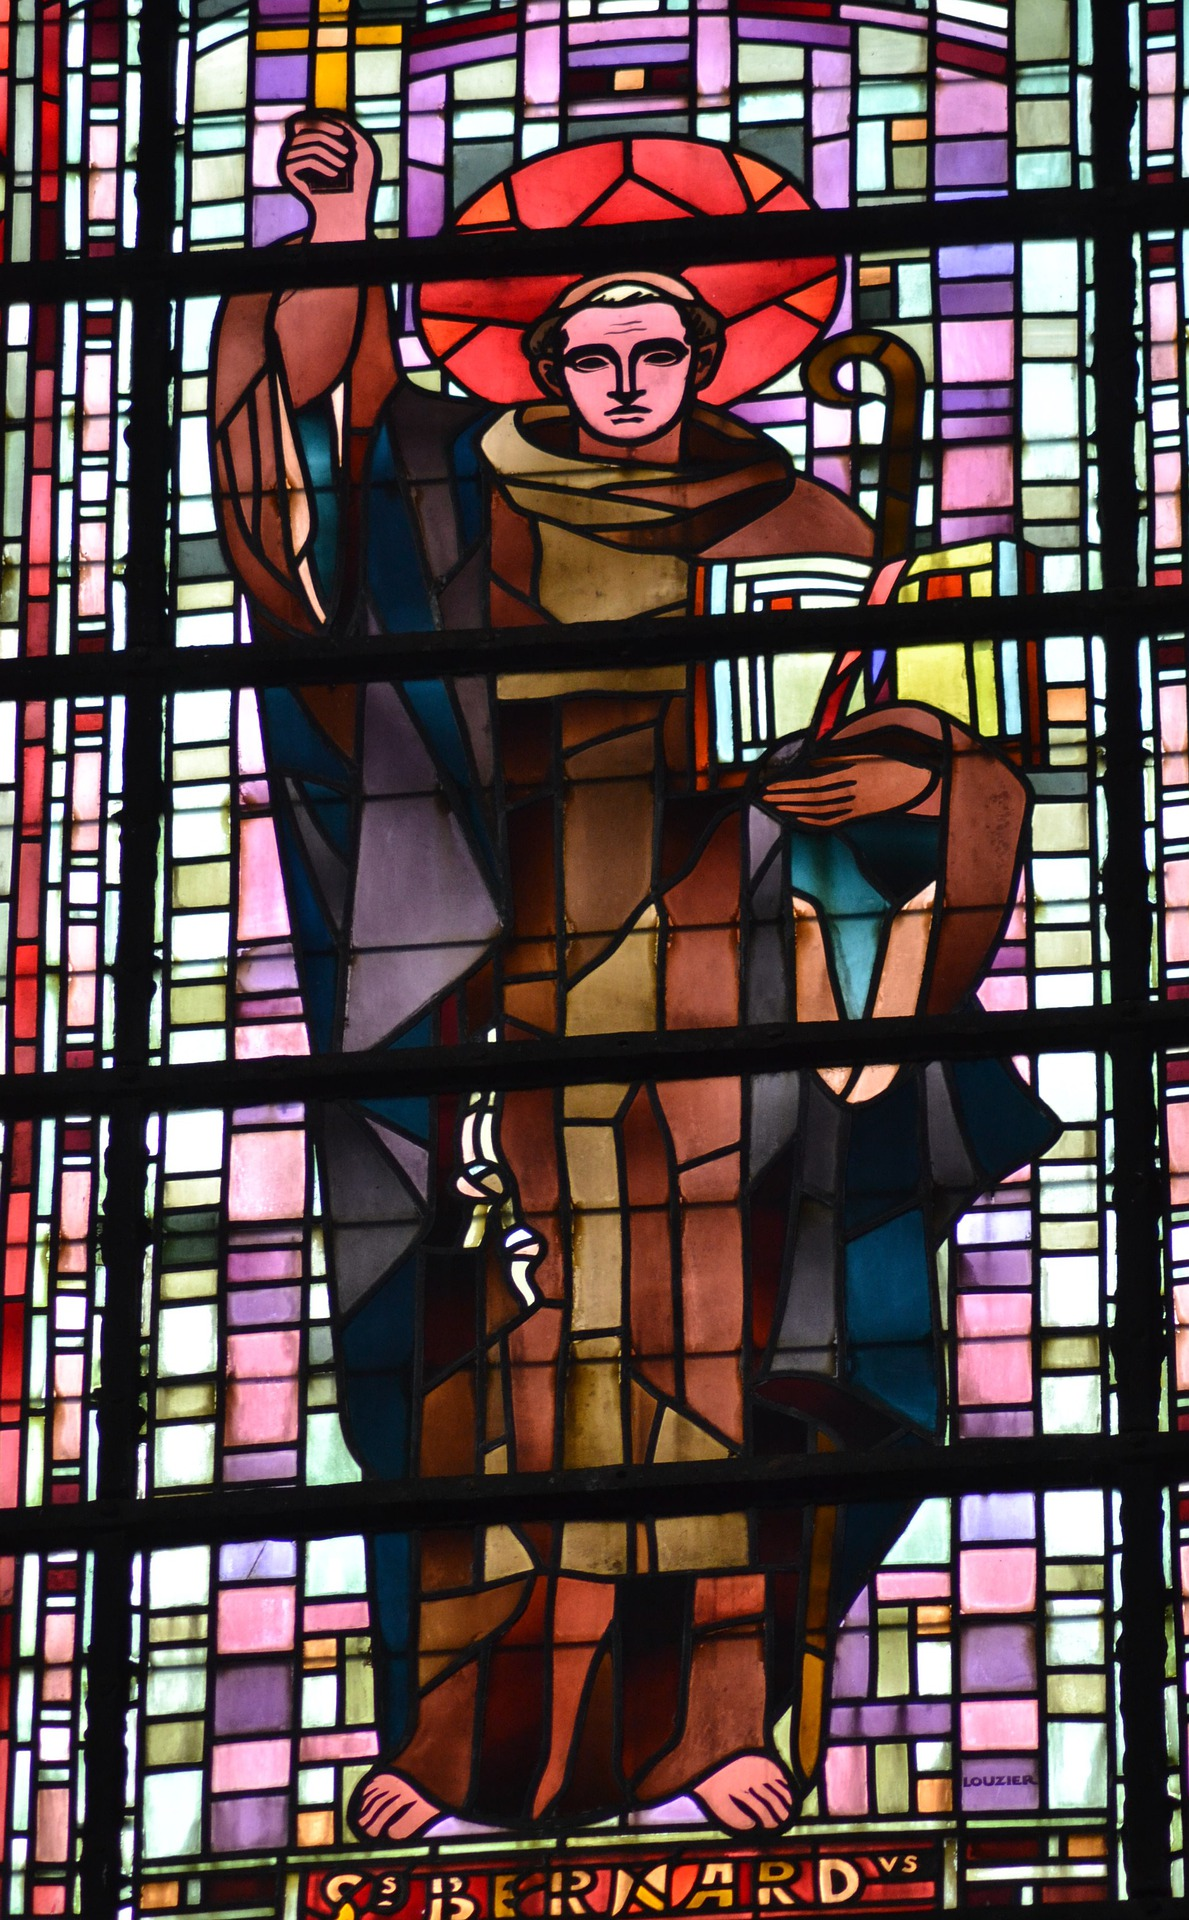 stained-glass-4760908_1920